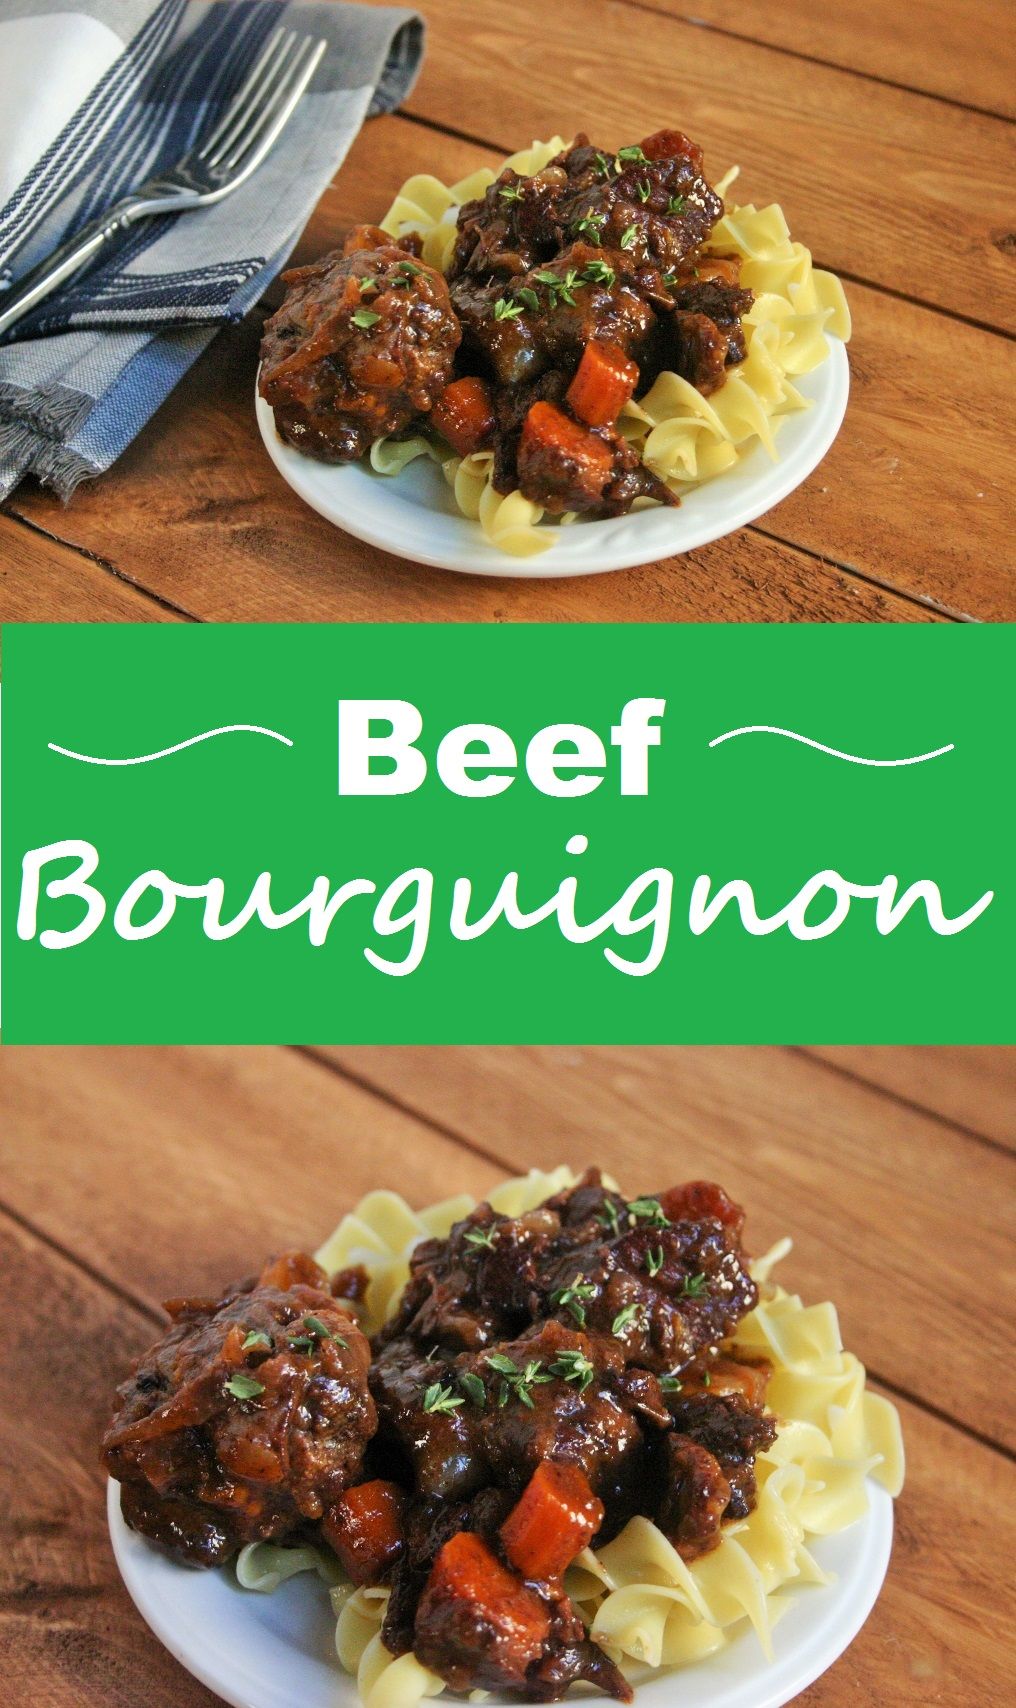 Beef bourguignon collage